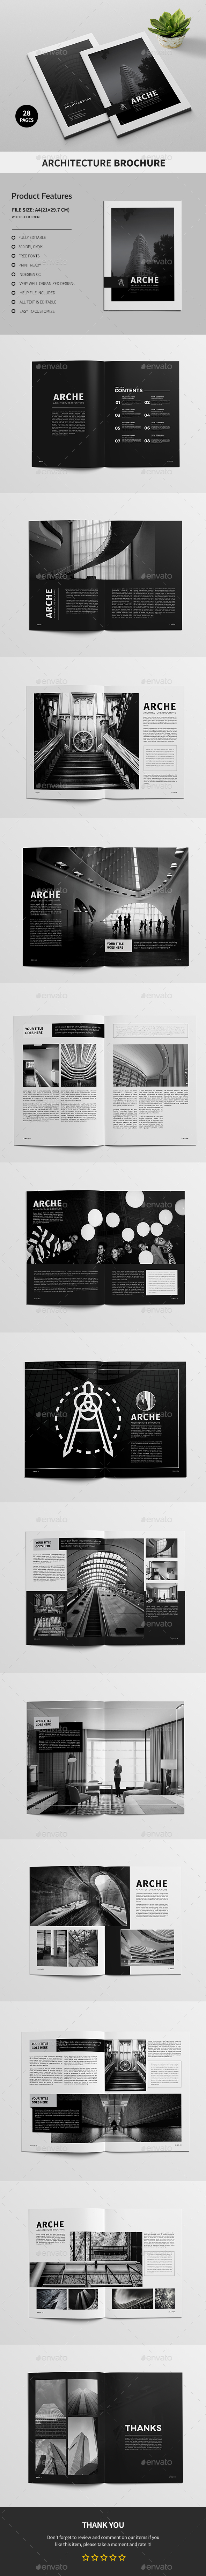 Architecture Brochure A4 - Corporate Brochures